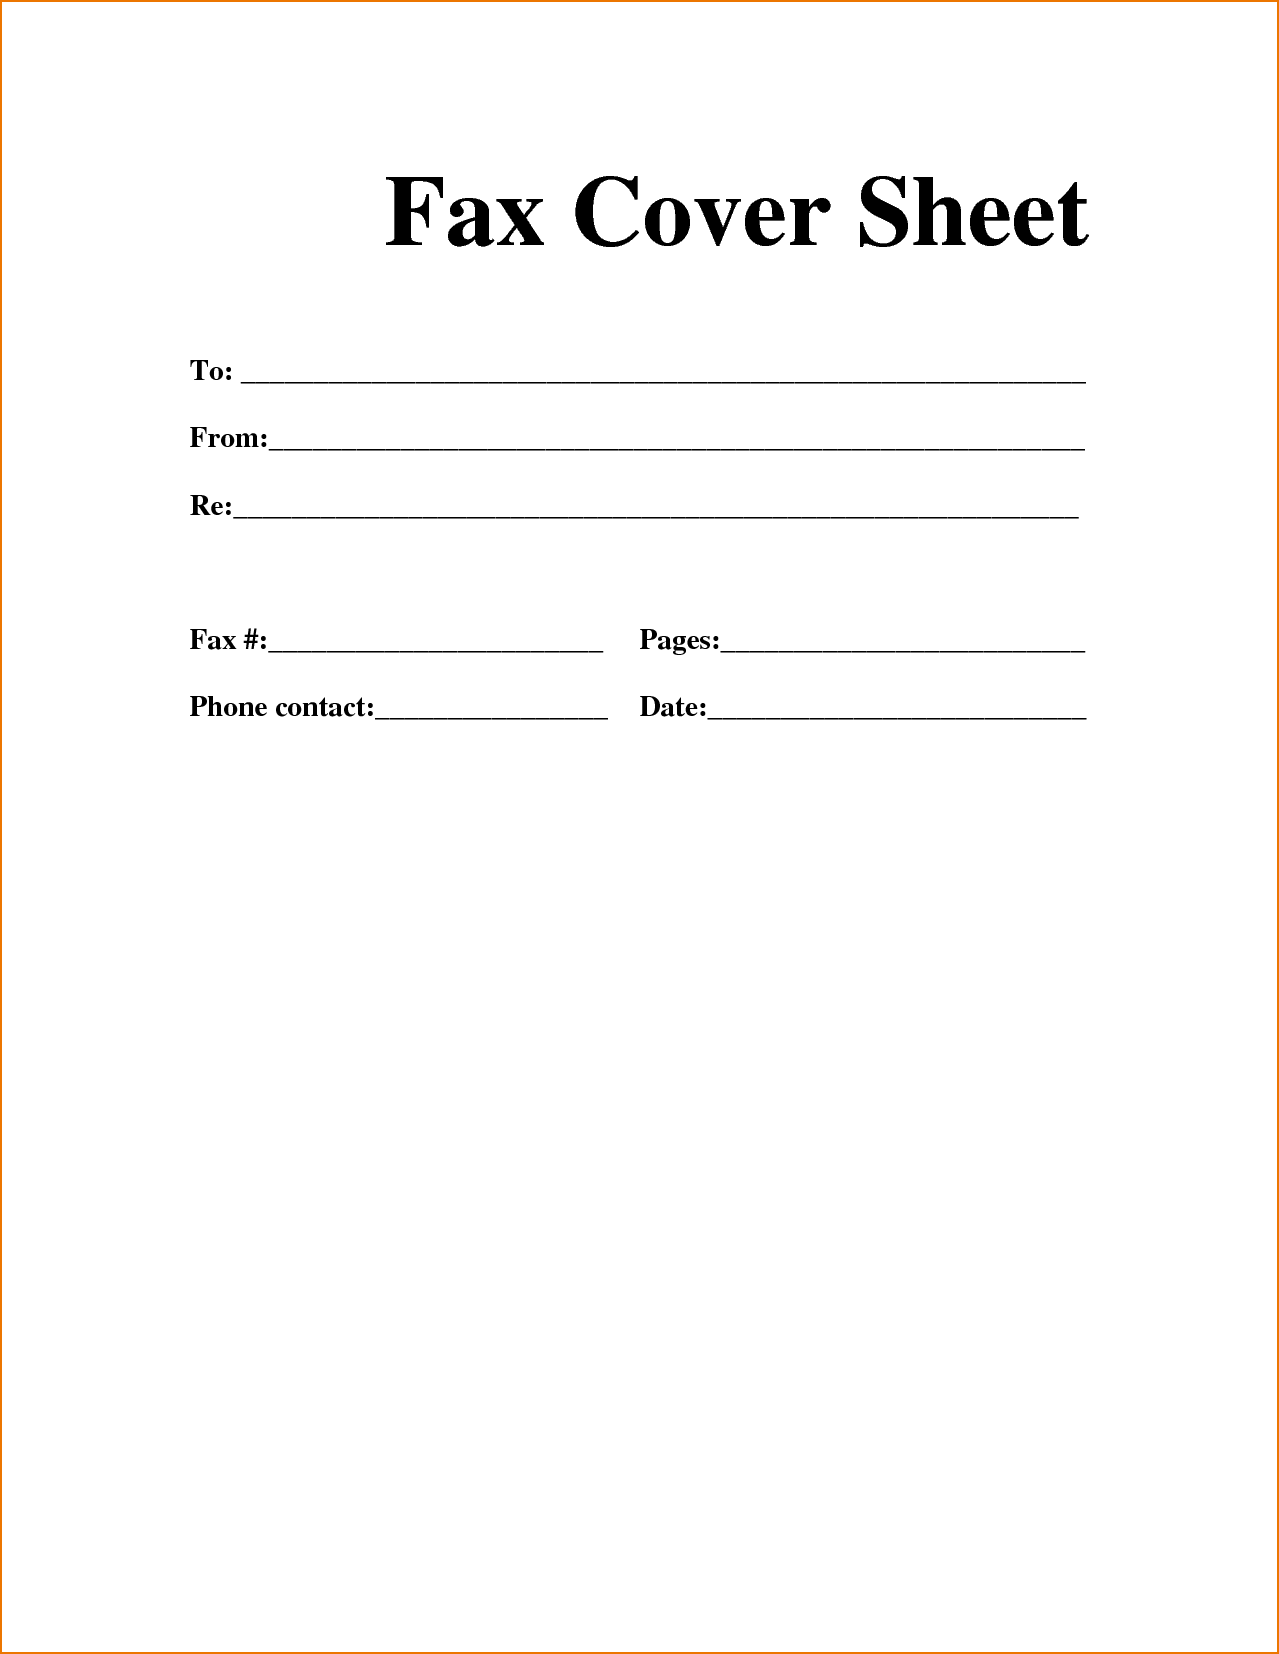 image about Printable Fax Cover Sheet Free titled pattern individual fax deal with sheet TEMPLATE within 2019 Go over